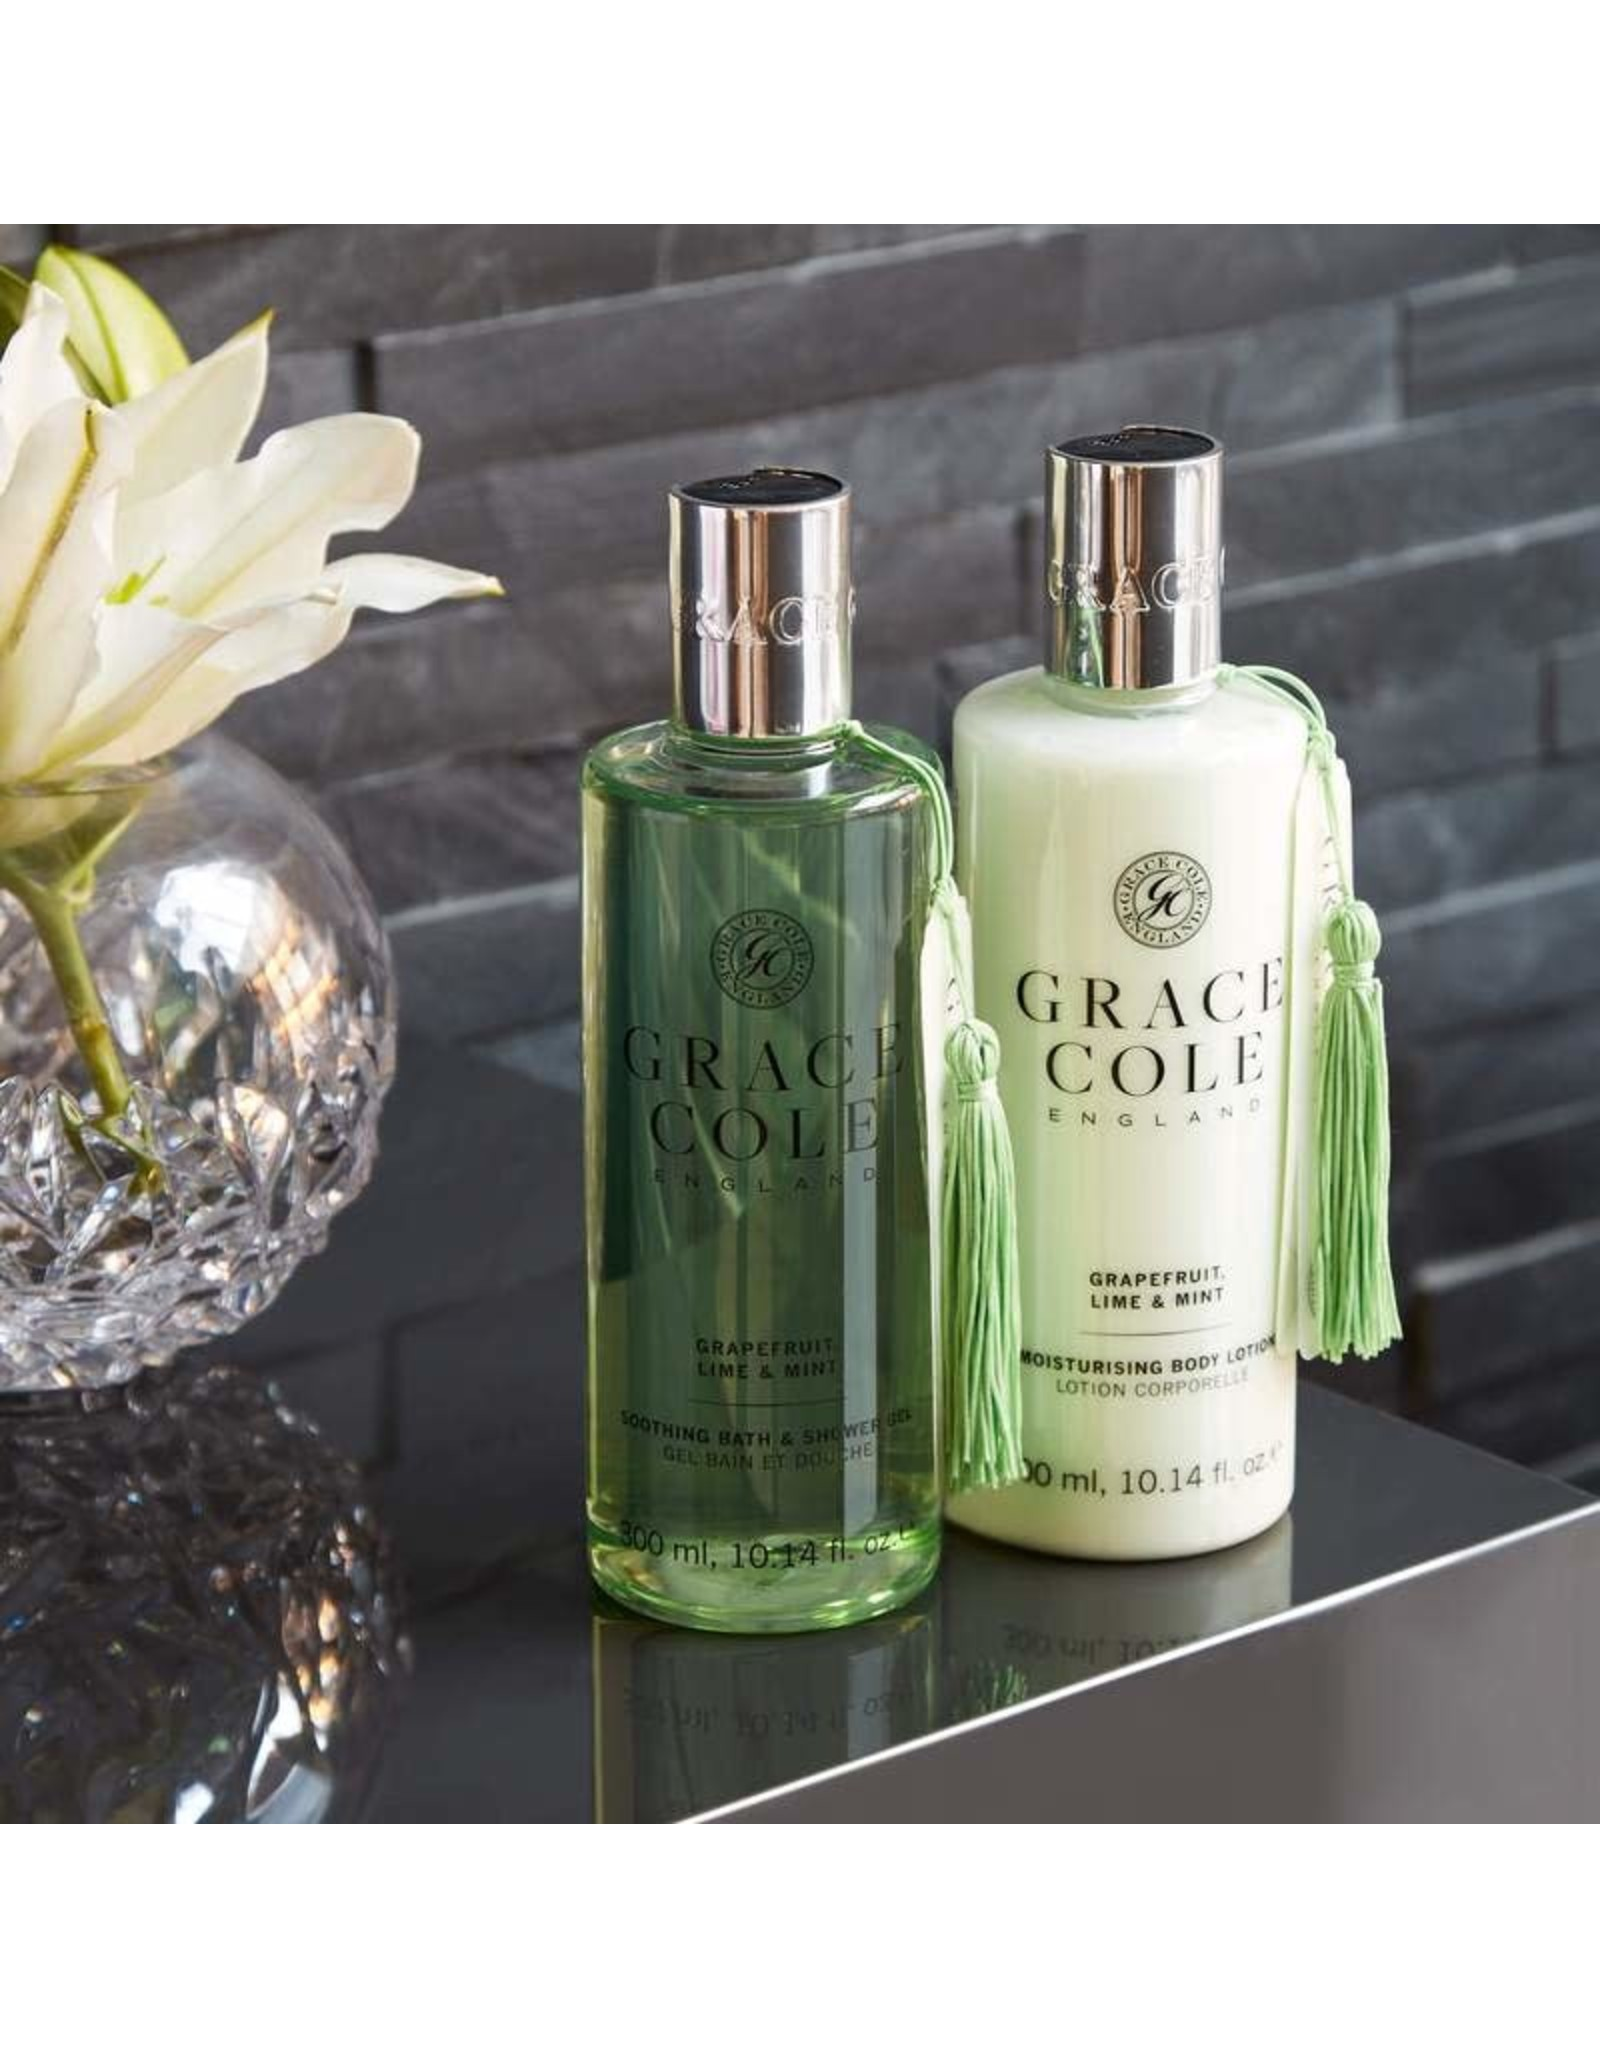 Grace Cole Body Lotion Grapefruit, Lime&Mint